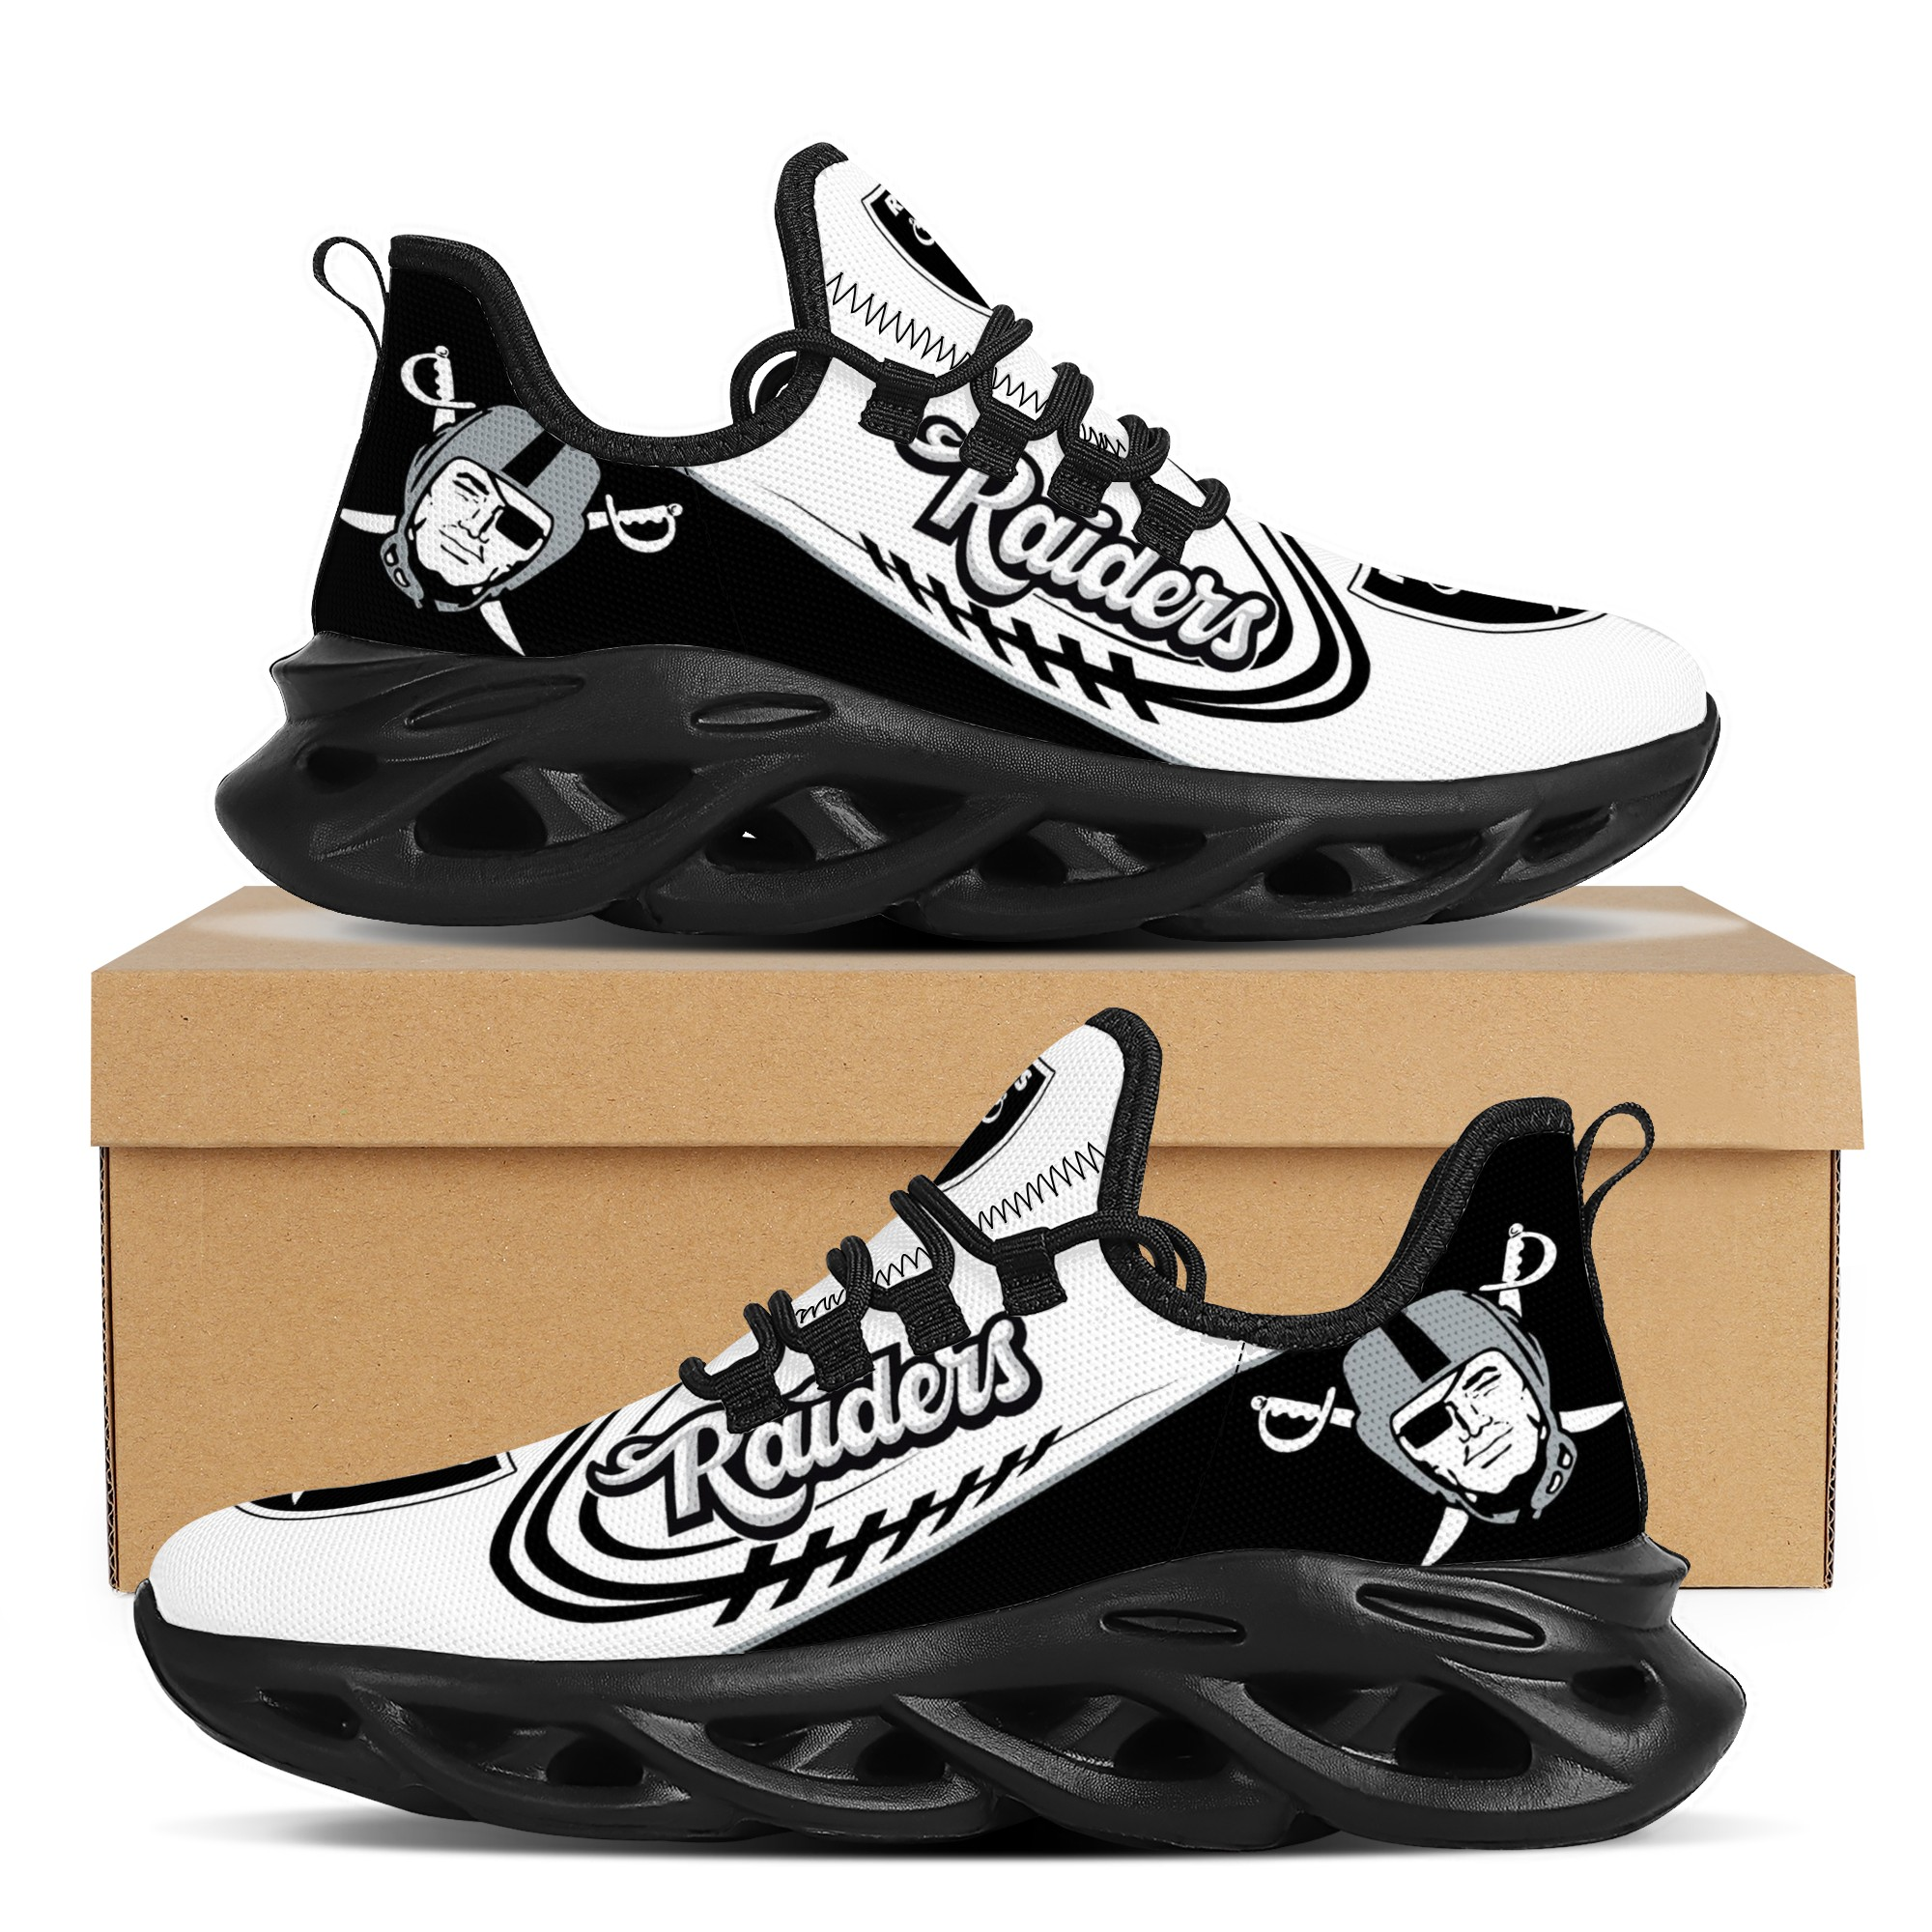 Men's Las Vegas Raiders Flex Control Sneakers 003